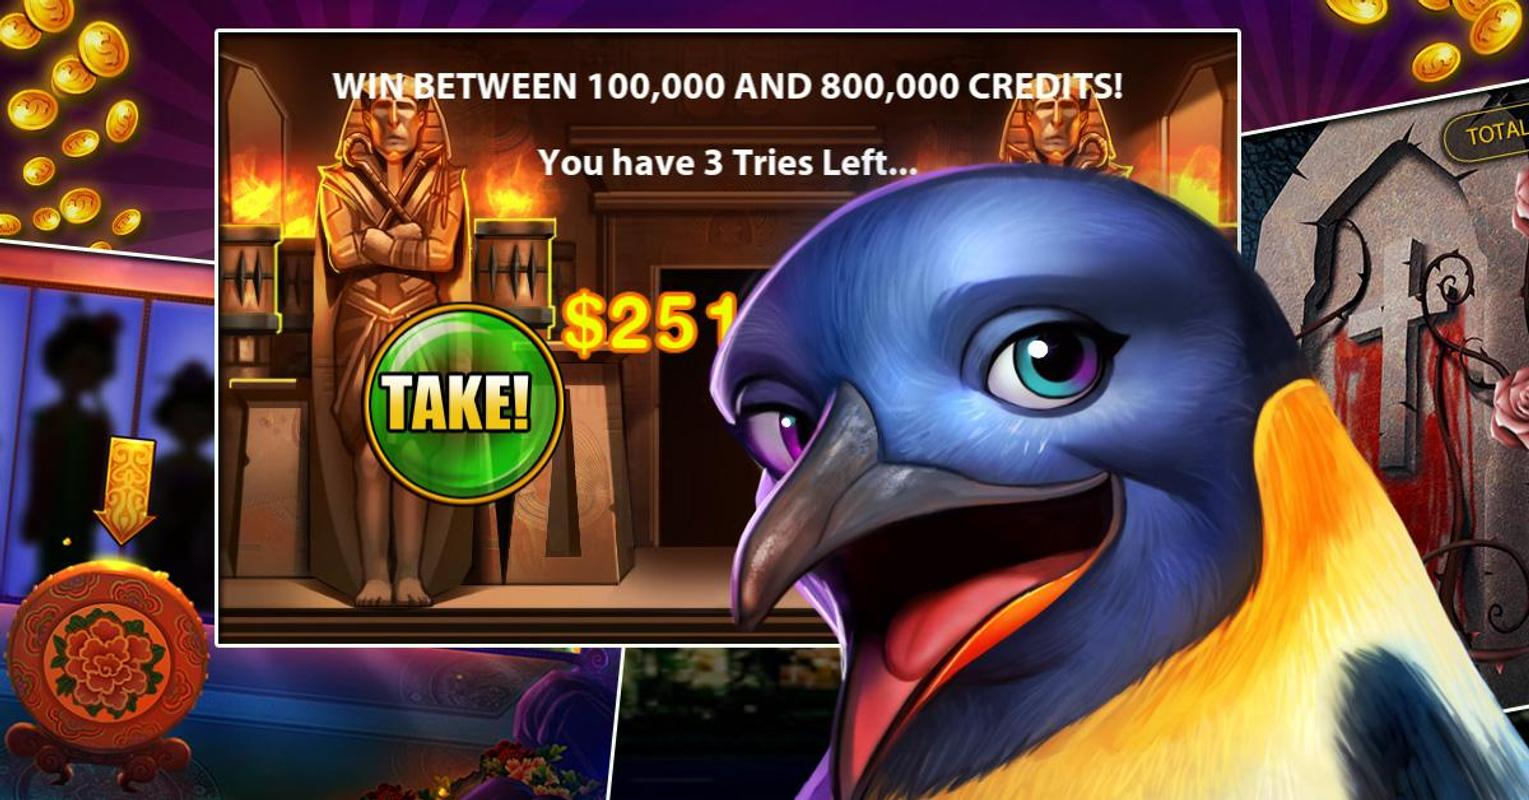 Slots free big win casino